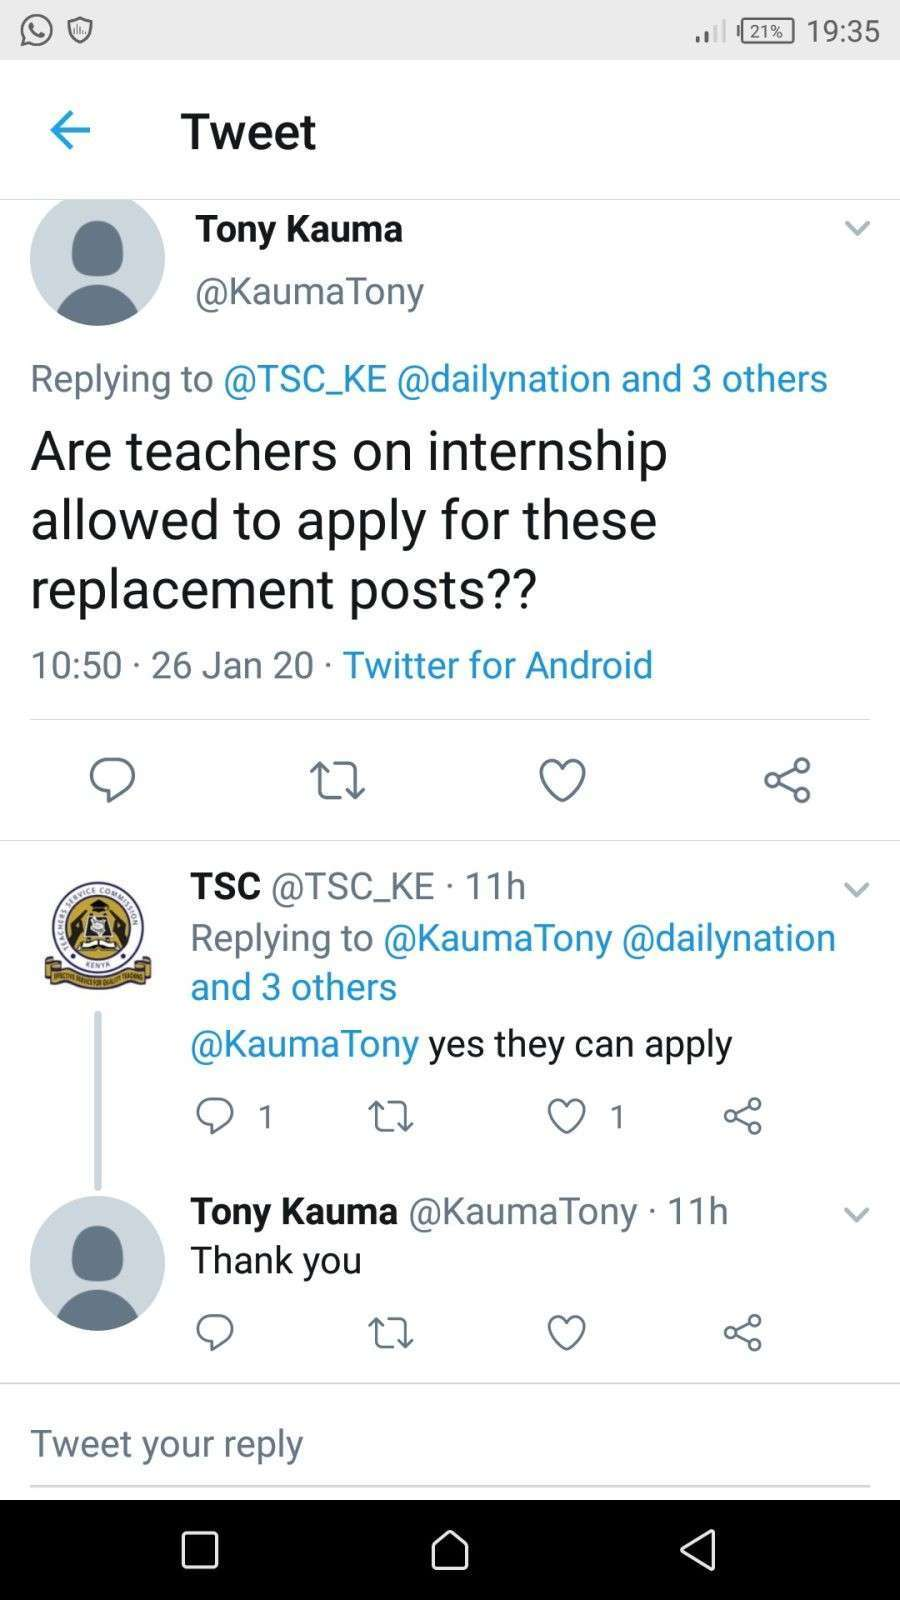 The response from TSC that gives Teacher Interns freedom to apply for the Permanent/ Replacement posts.